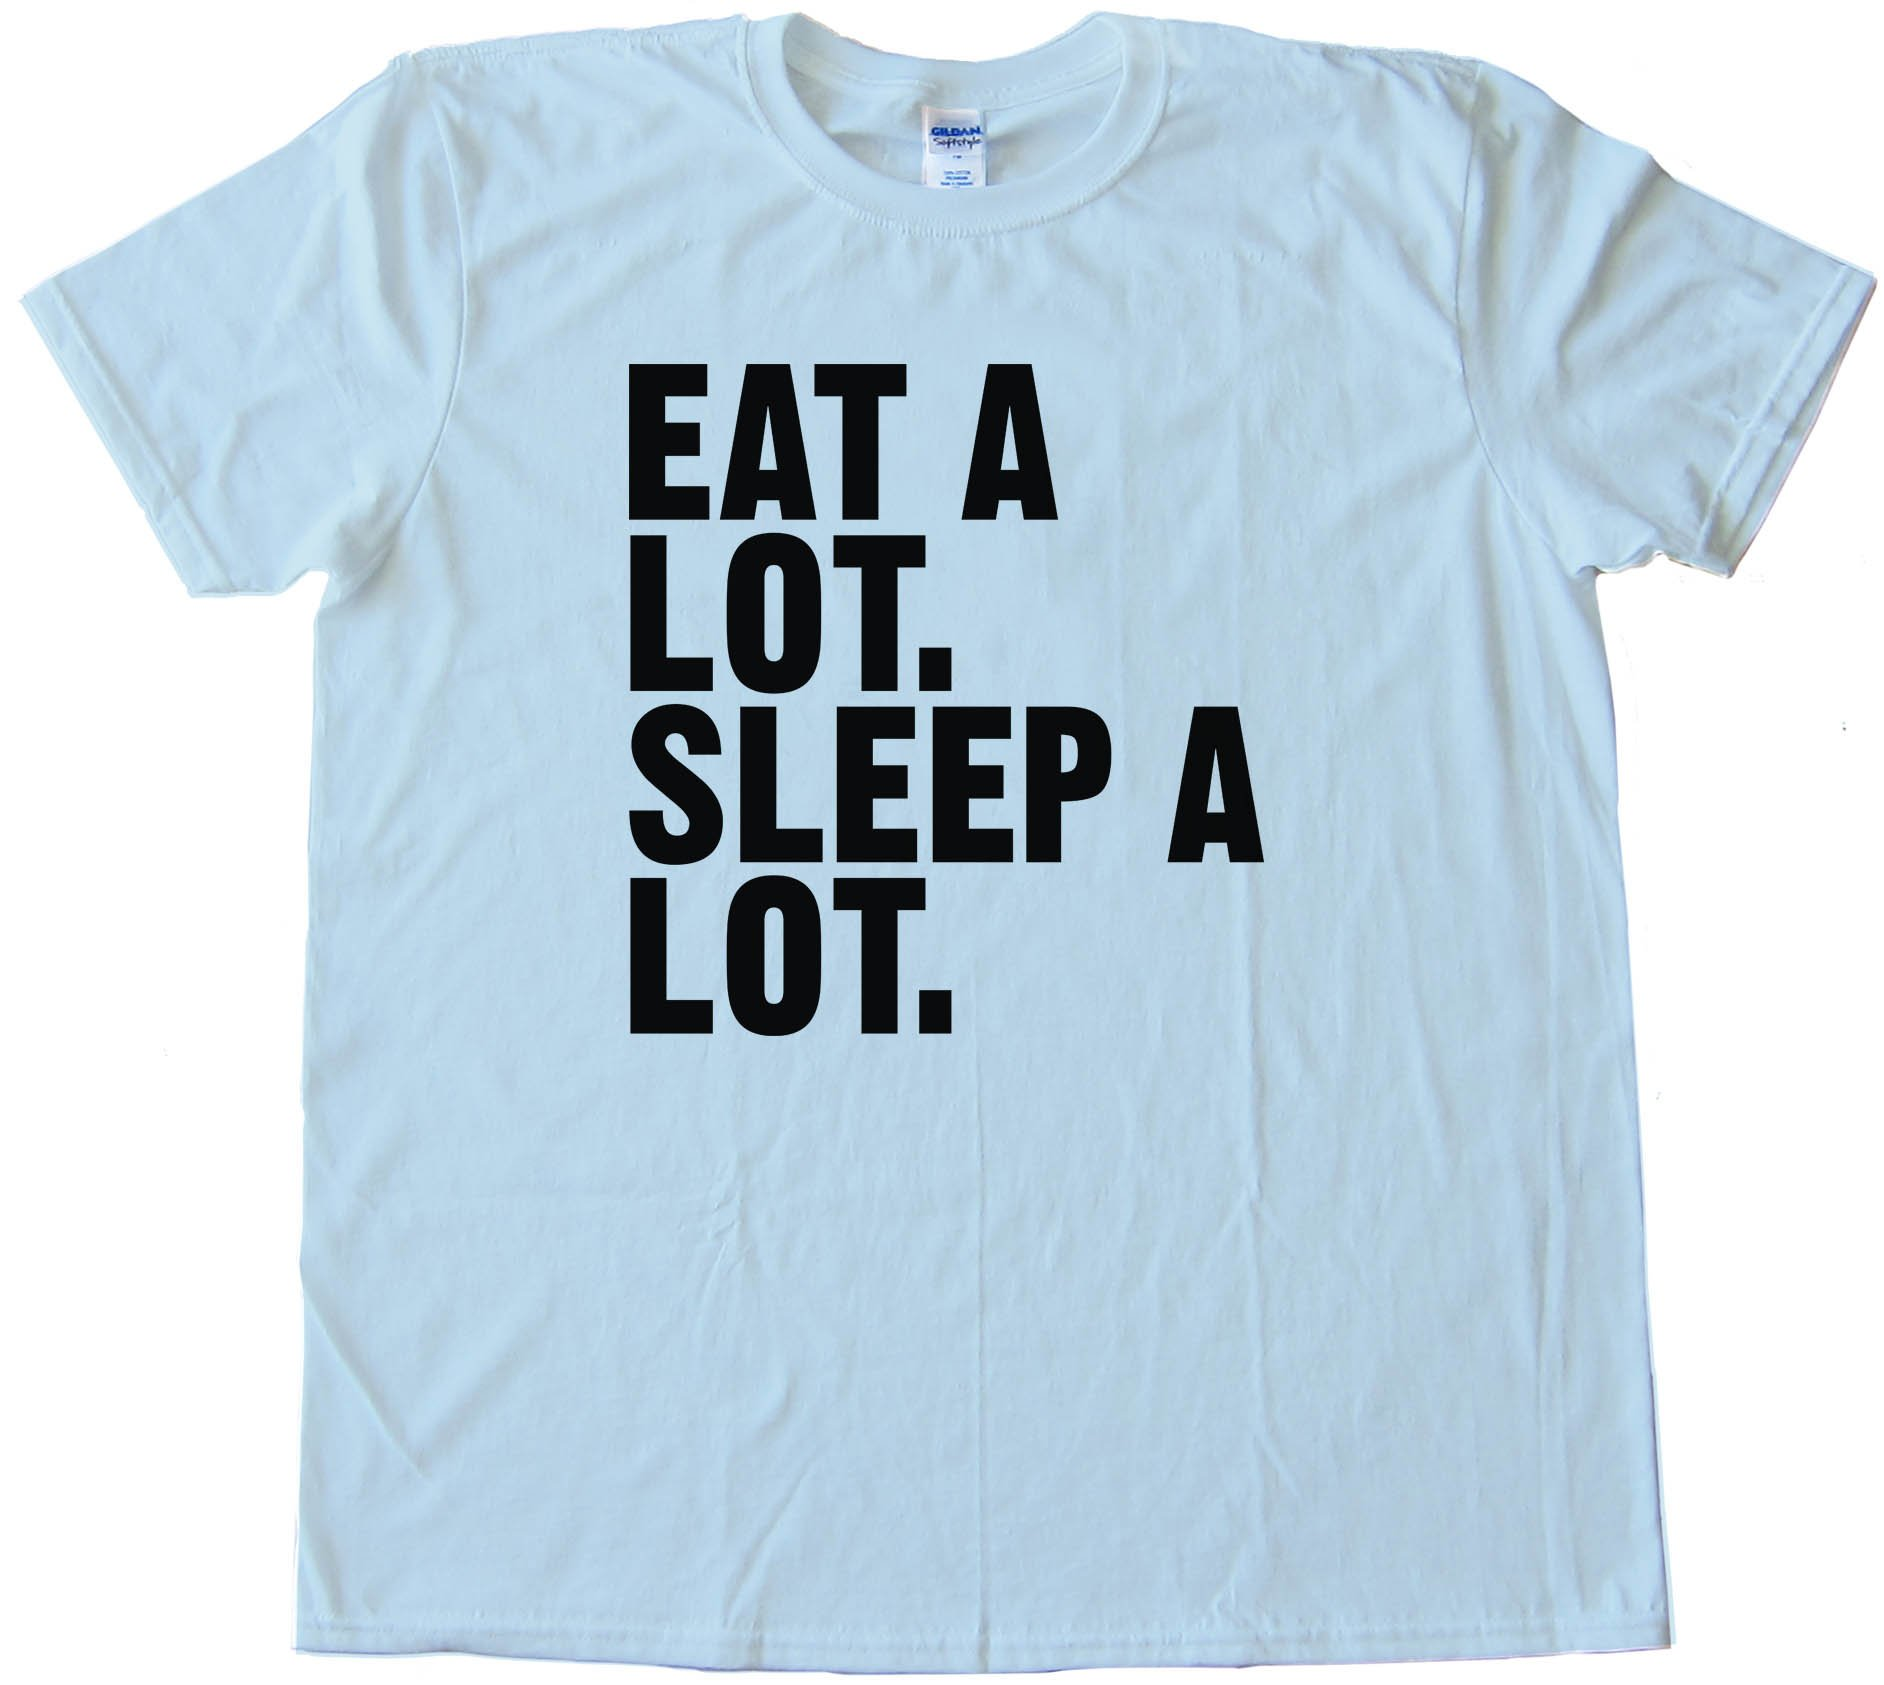 Eat A Lot. Sleep A Lot. - Tee Shirt